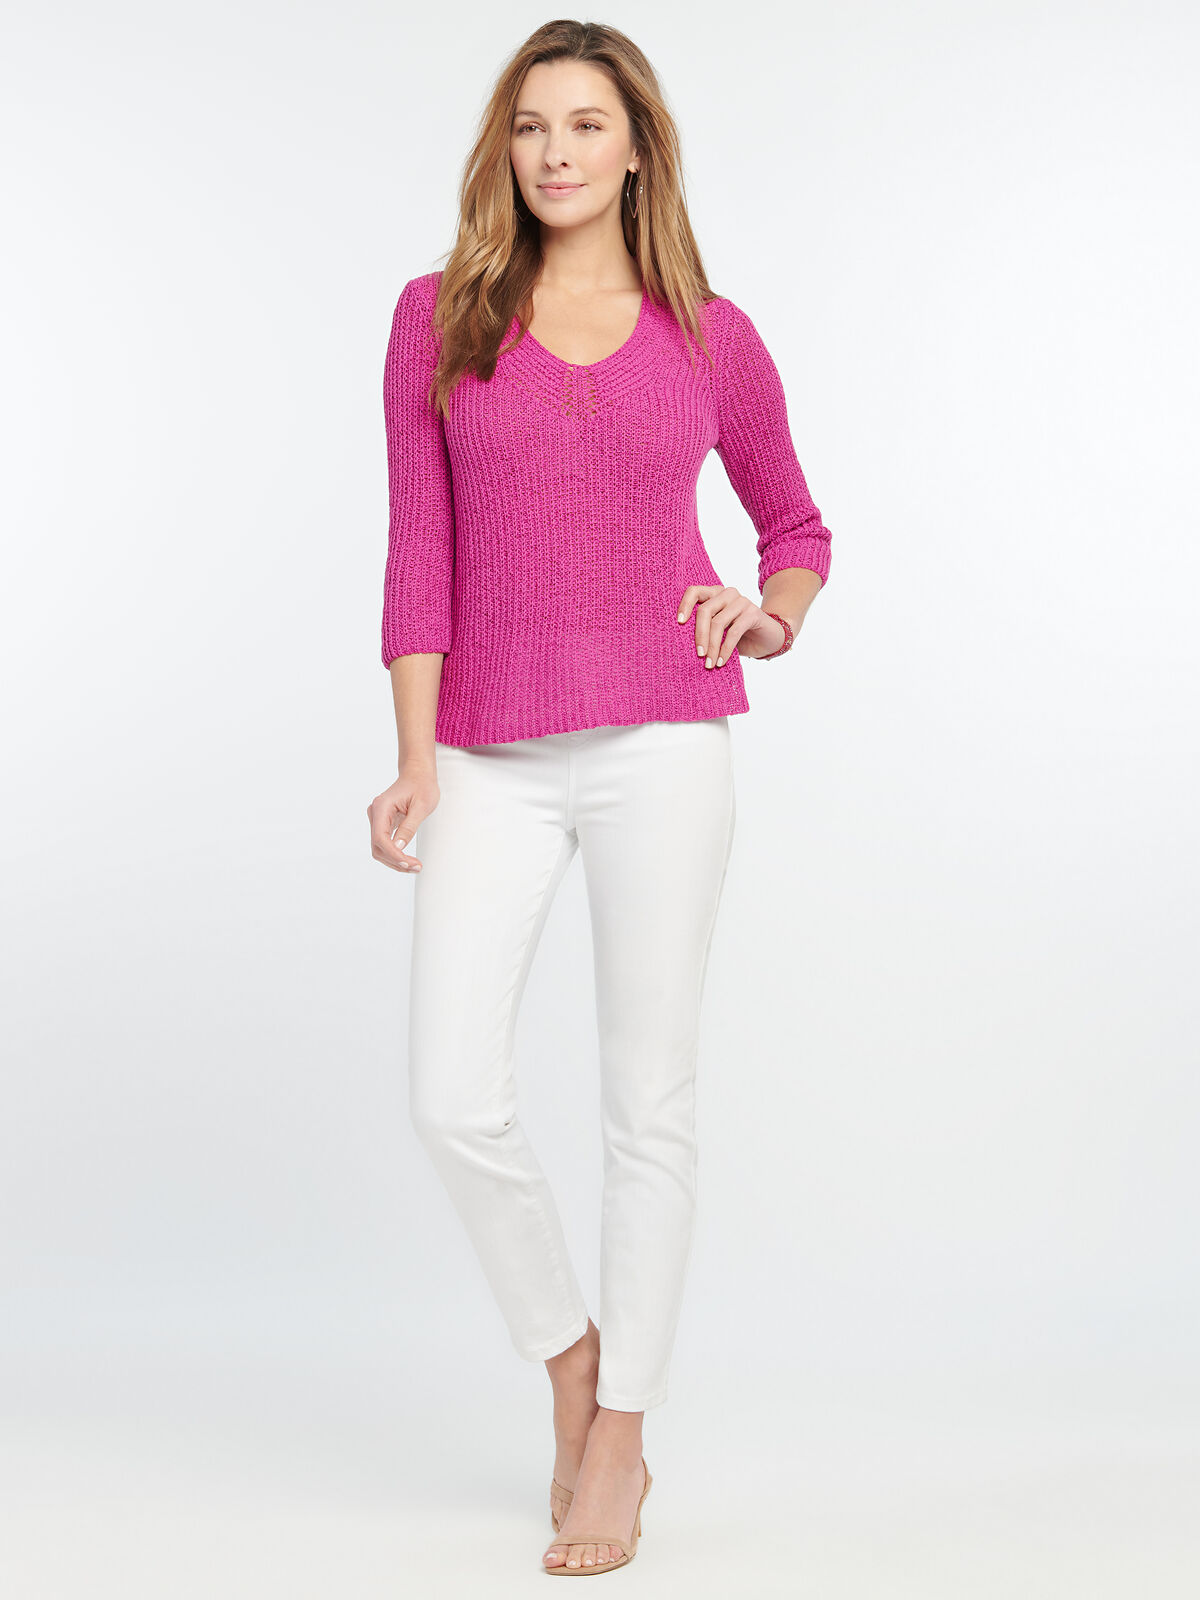 Magnolia Sweater